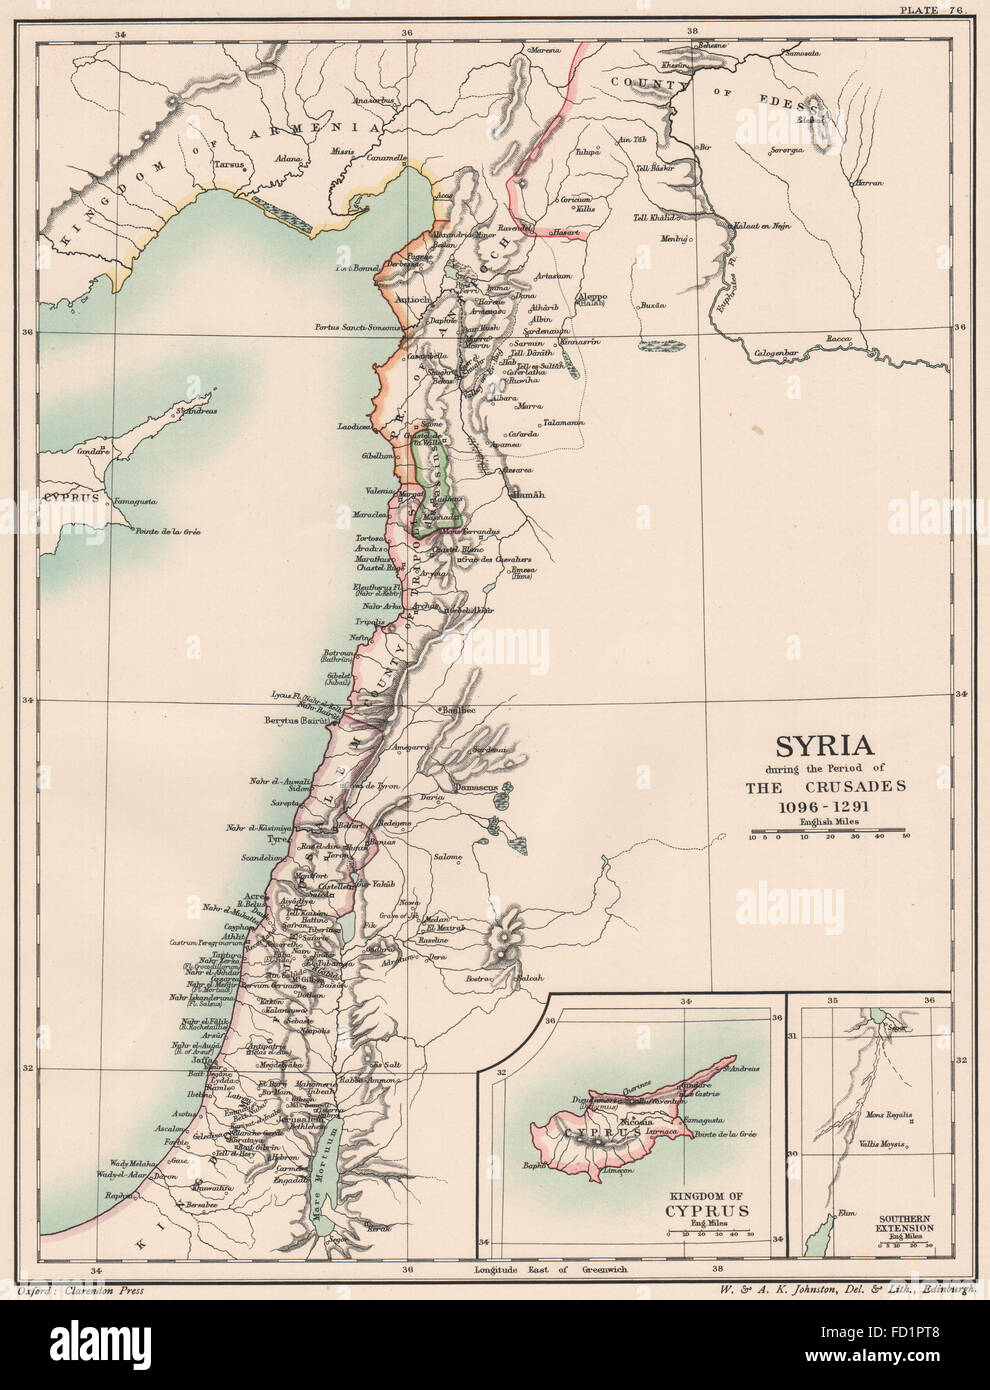 SYRIA 1096-1291: during the Crusades. 12C 13C. Inset: Kingdom of Cyprus 1902 map - Stock Image